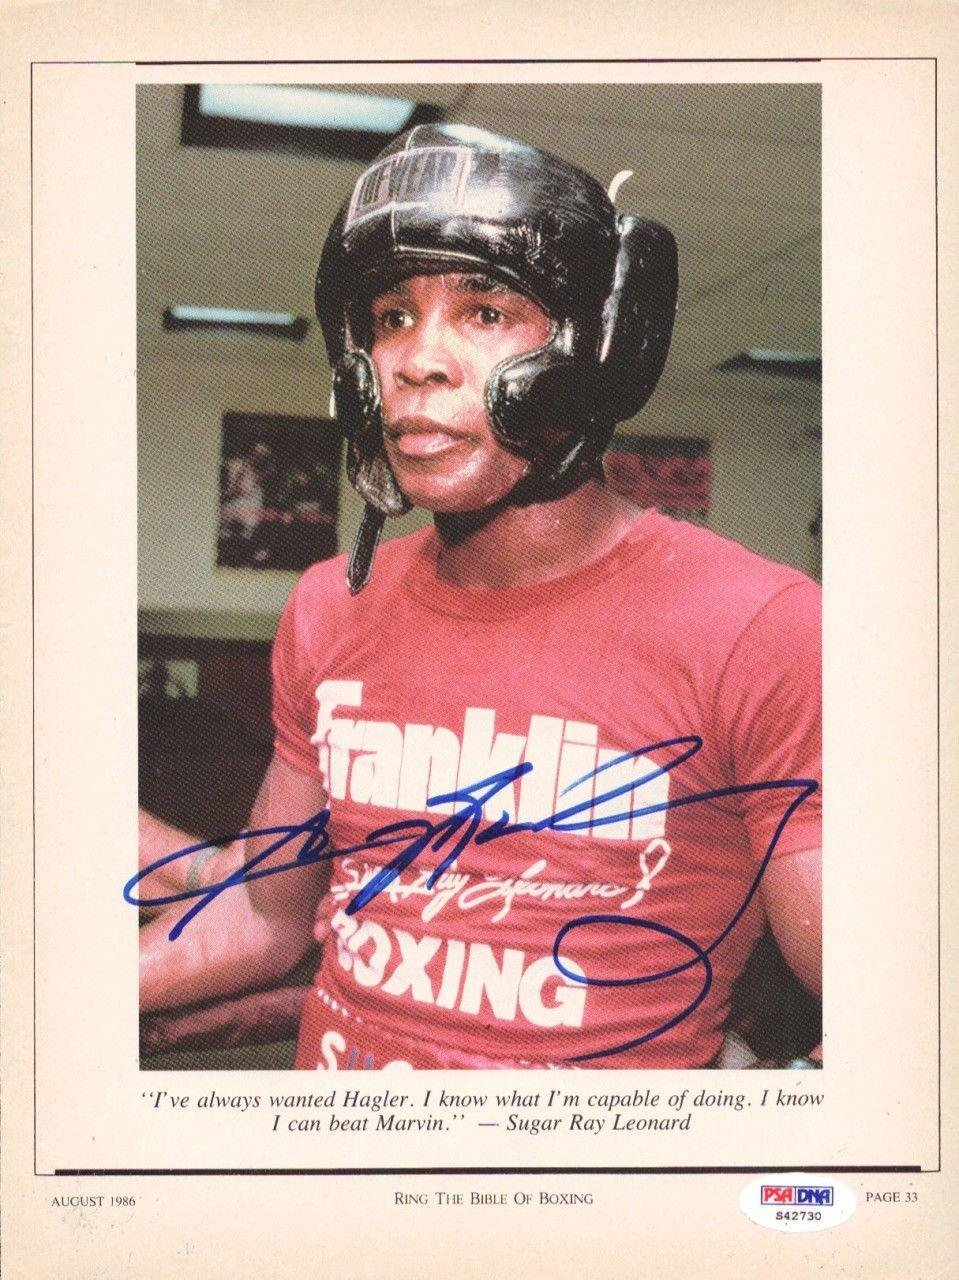 Sugar Ray Leonard Autographed Signed Magazine Page Photo S42730 PSA/DNA Certified Autographed Boxing Magazines